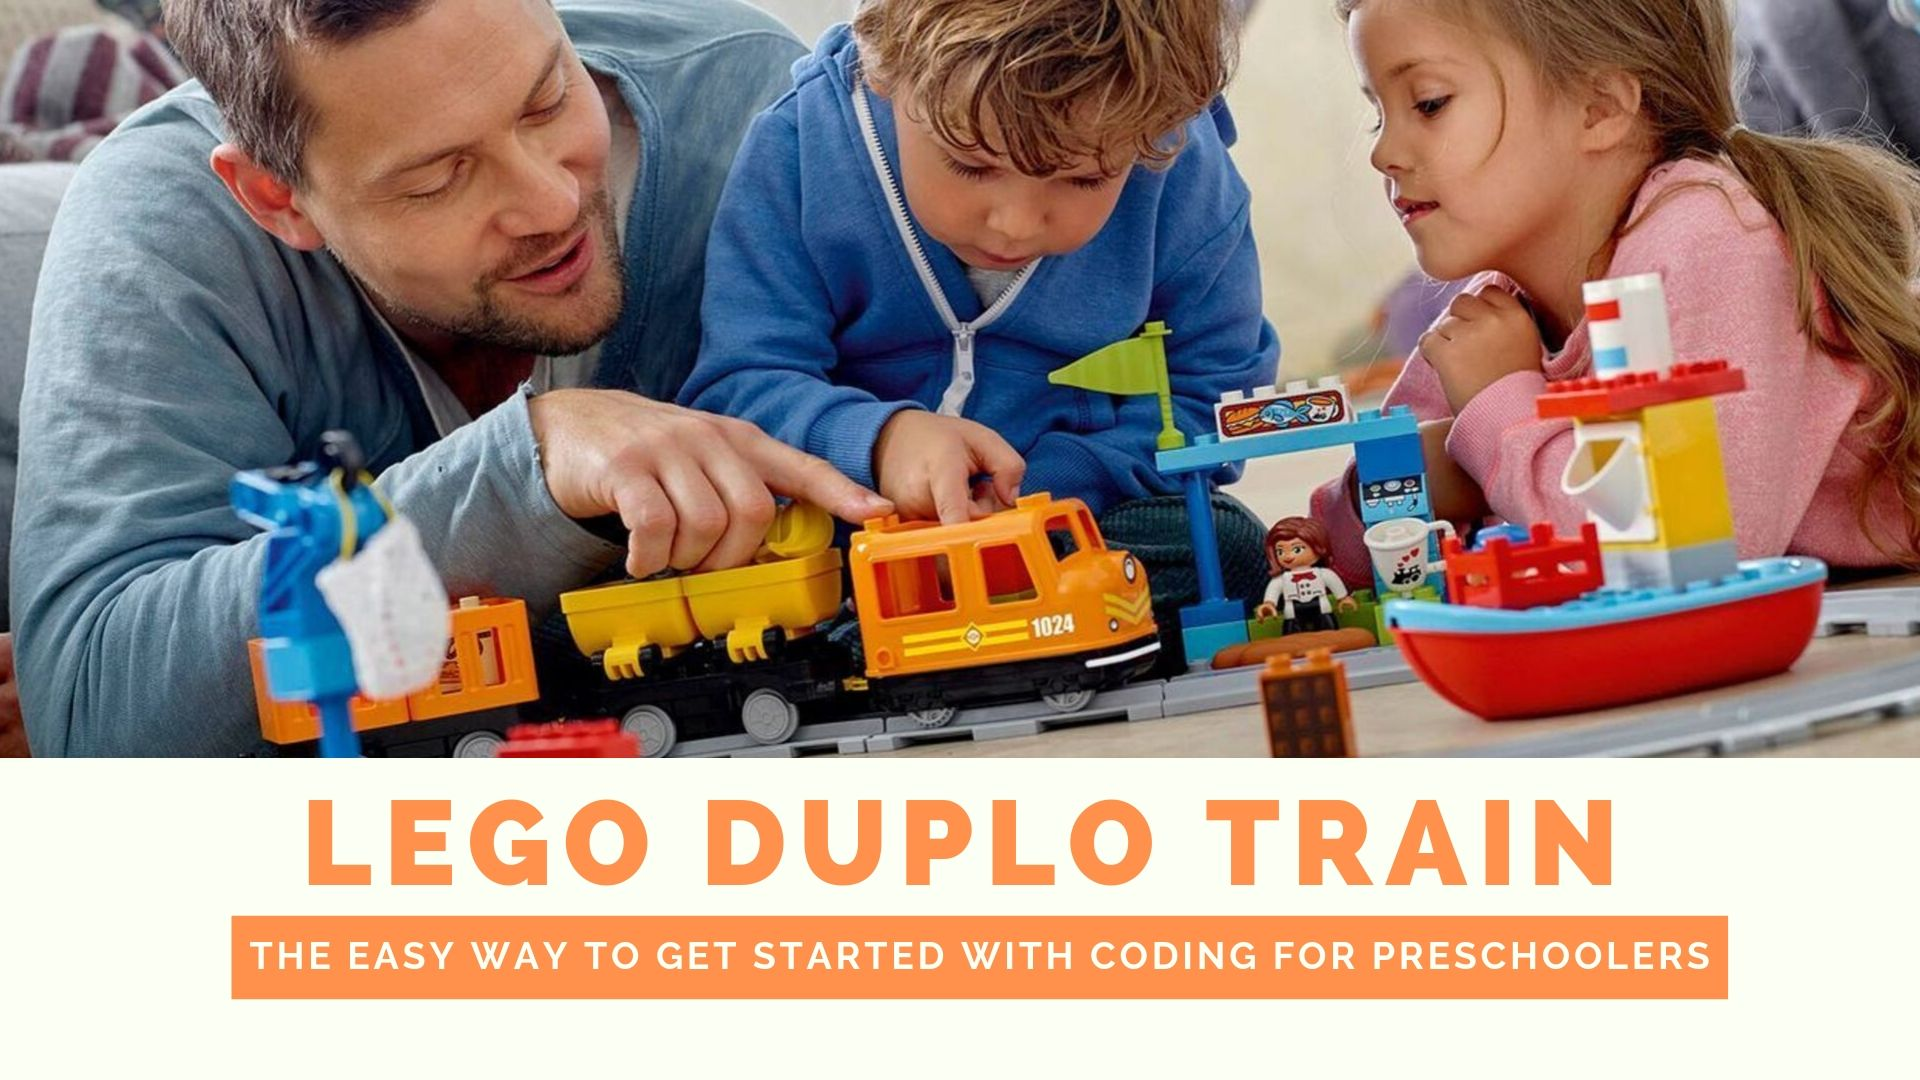 Lego Duplo Train - Easy Way to start with Coding for Preschoolers